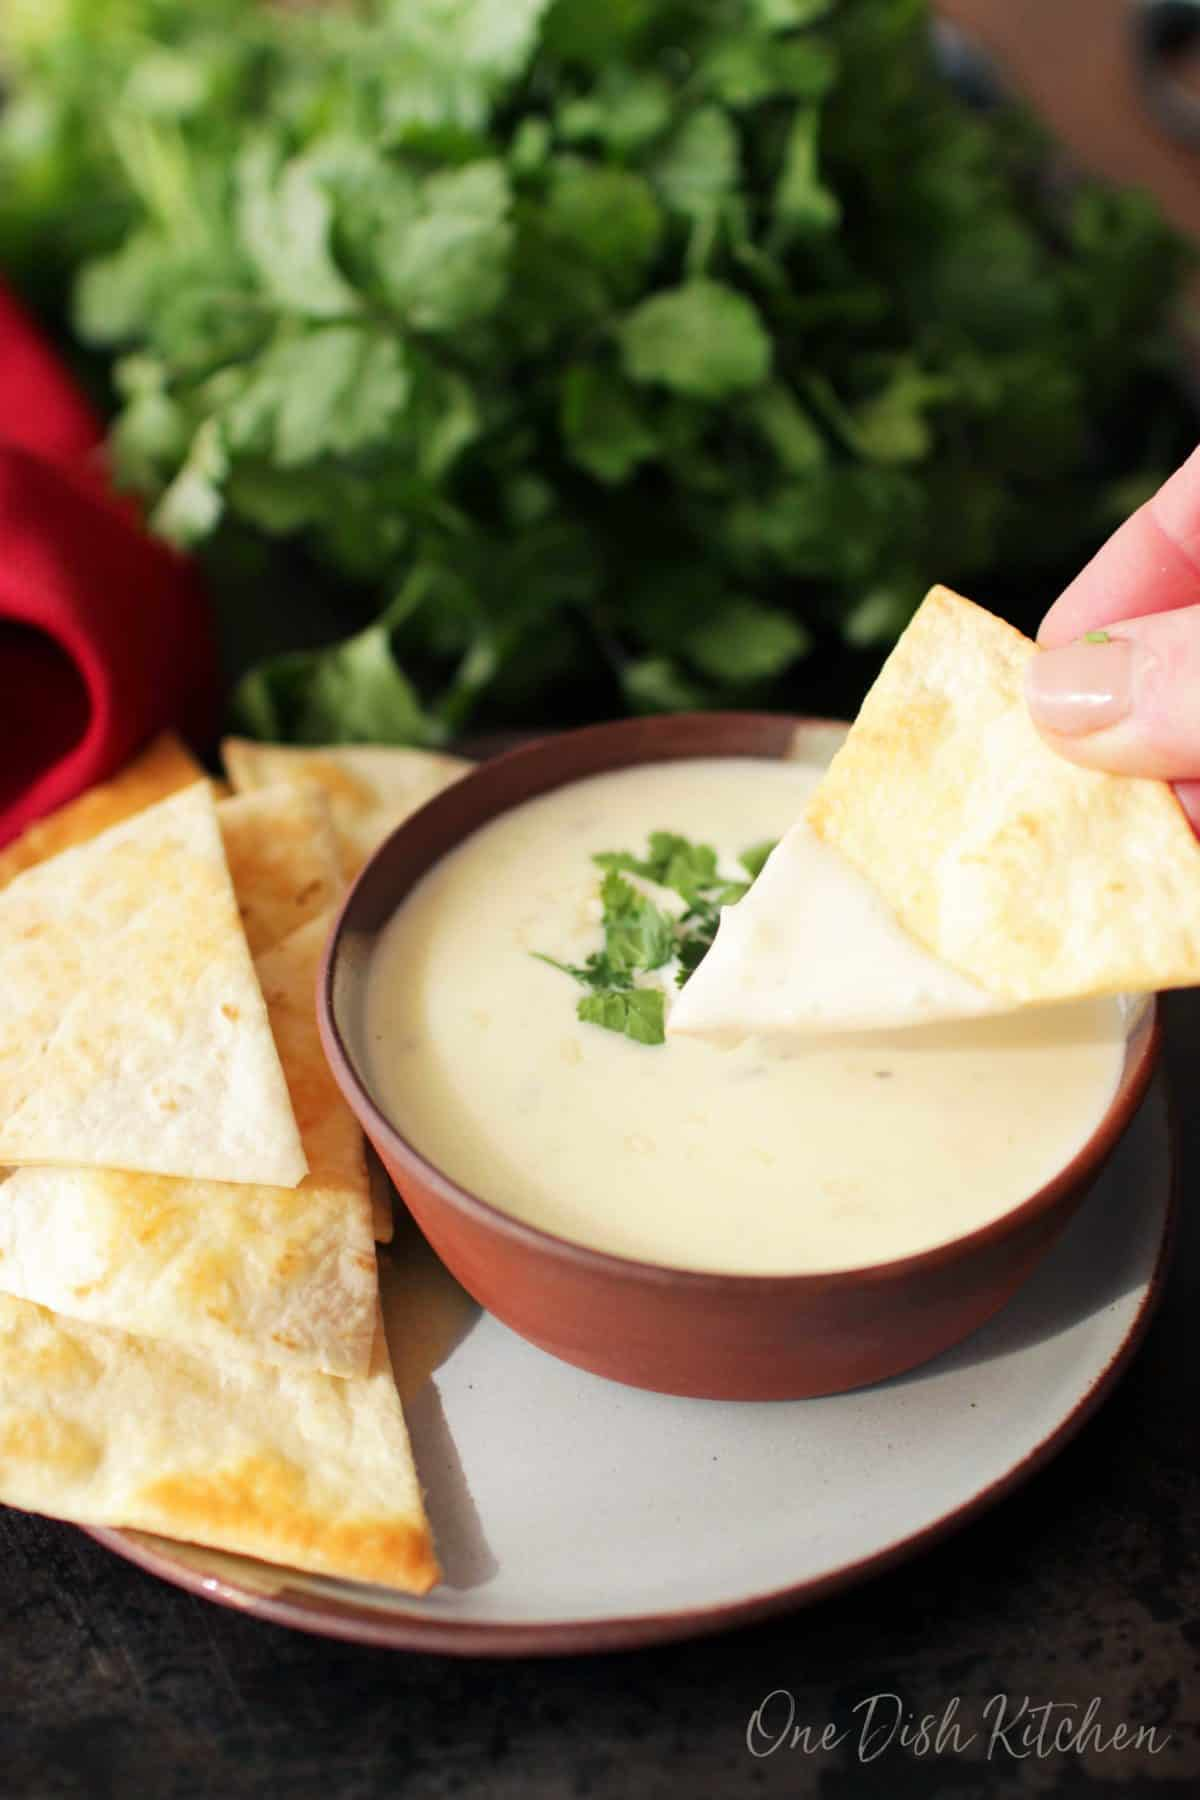 Dipping the edge of a homemade tortilla chip in a bowl of queso.